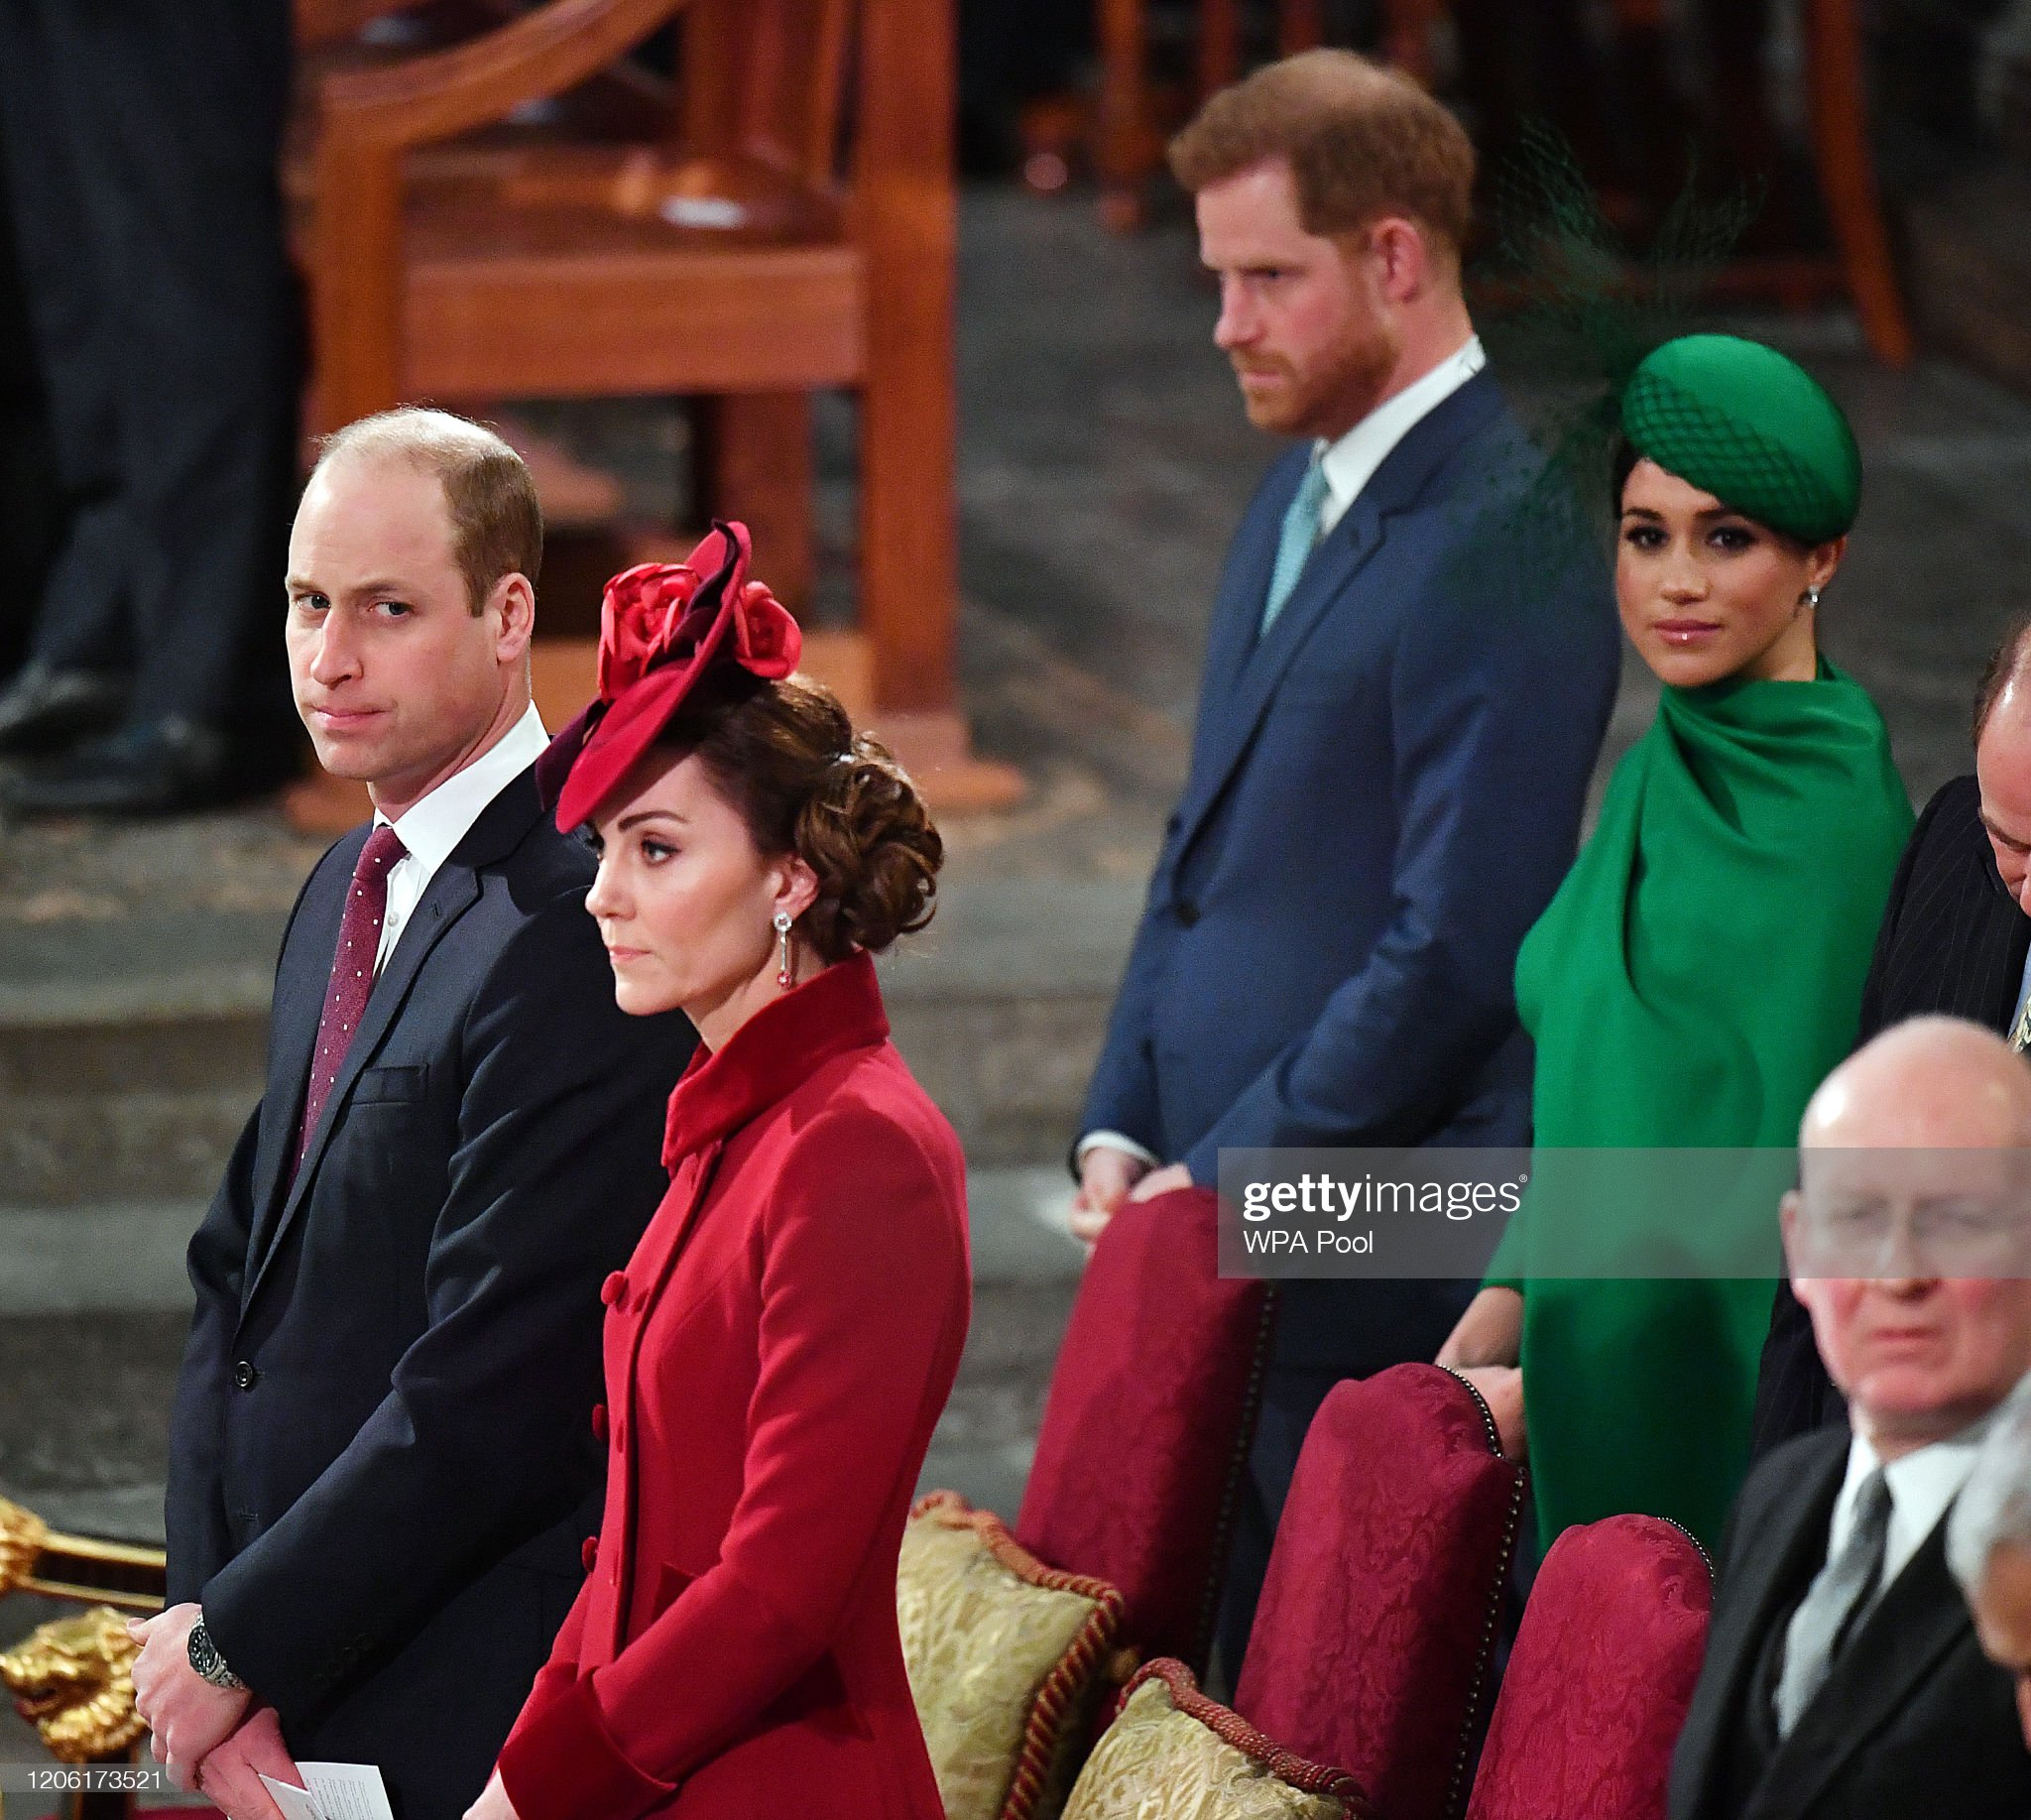 https://media.gettyimages.com/photos/prince-william-duke-of-cambridge-catherine-duchess-of-cambridge-of-picture-id1206173521?s=2048x2048